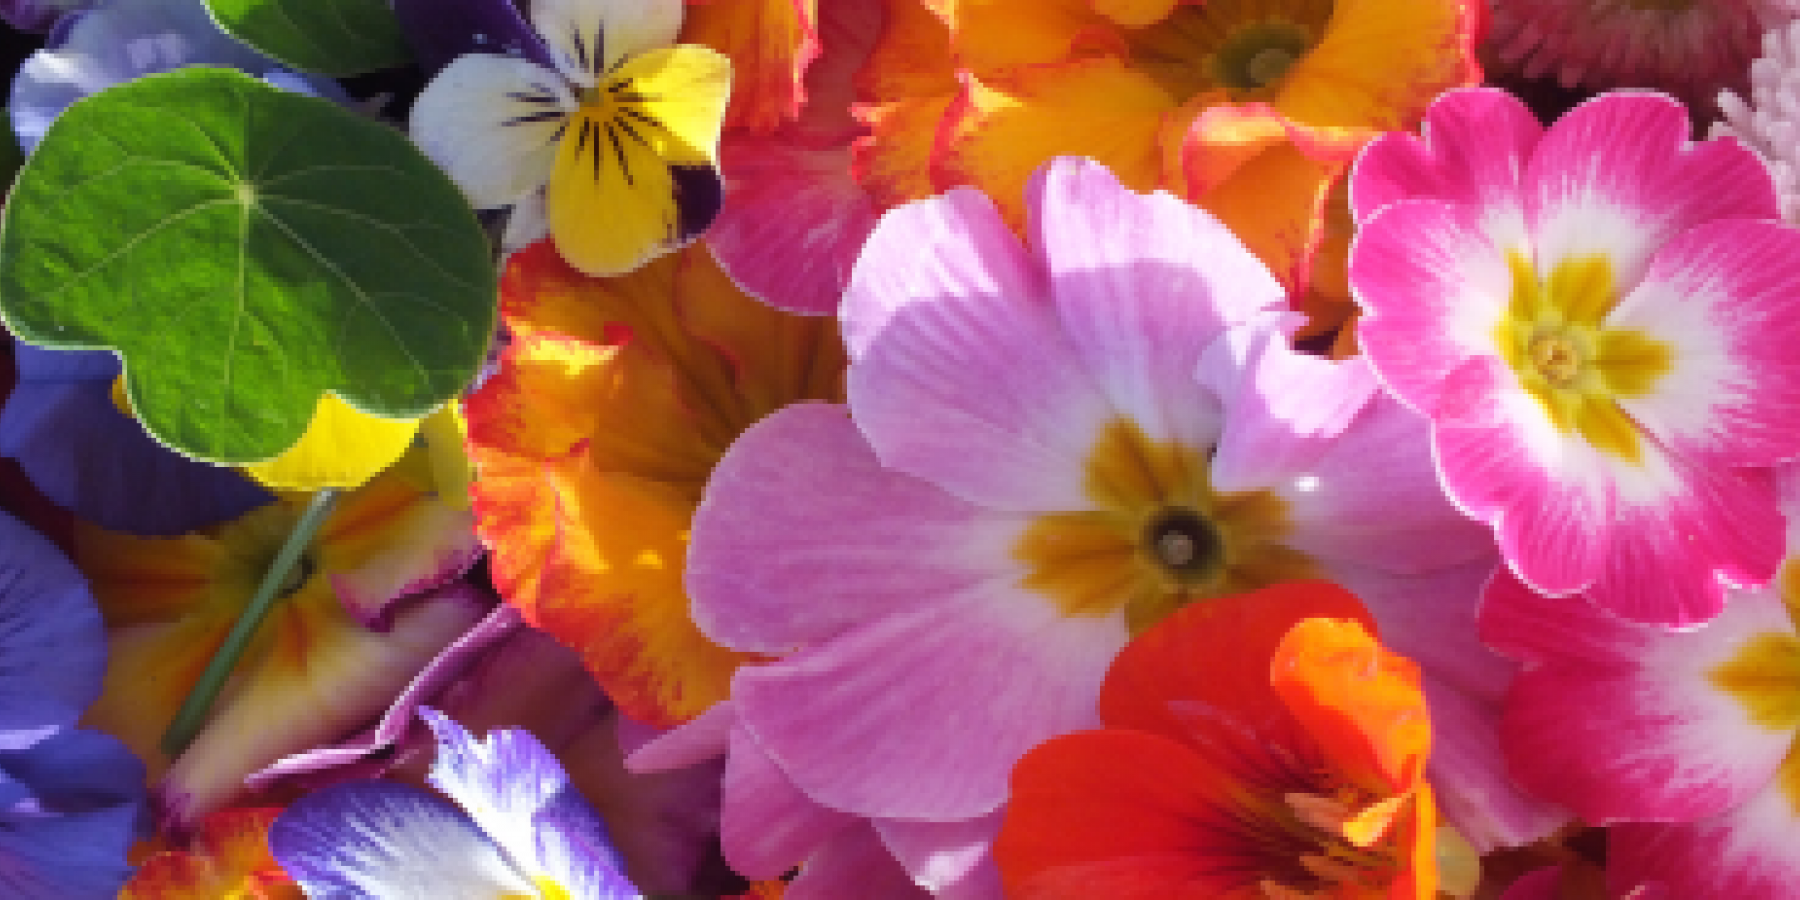 Buy edible flowers. Buy organic edible flowers. Edible flowers